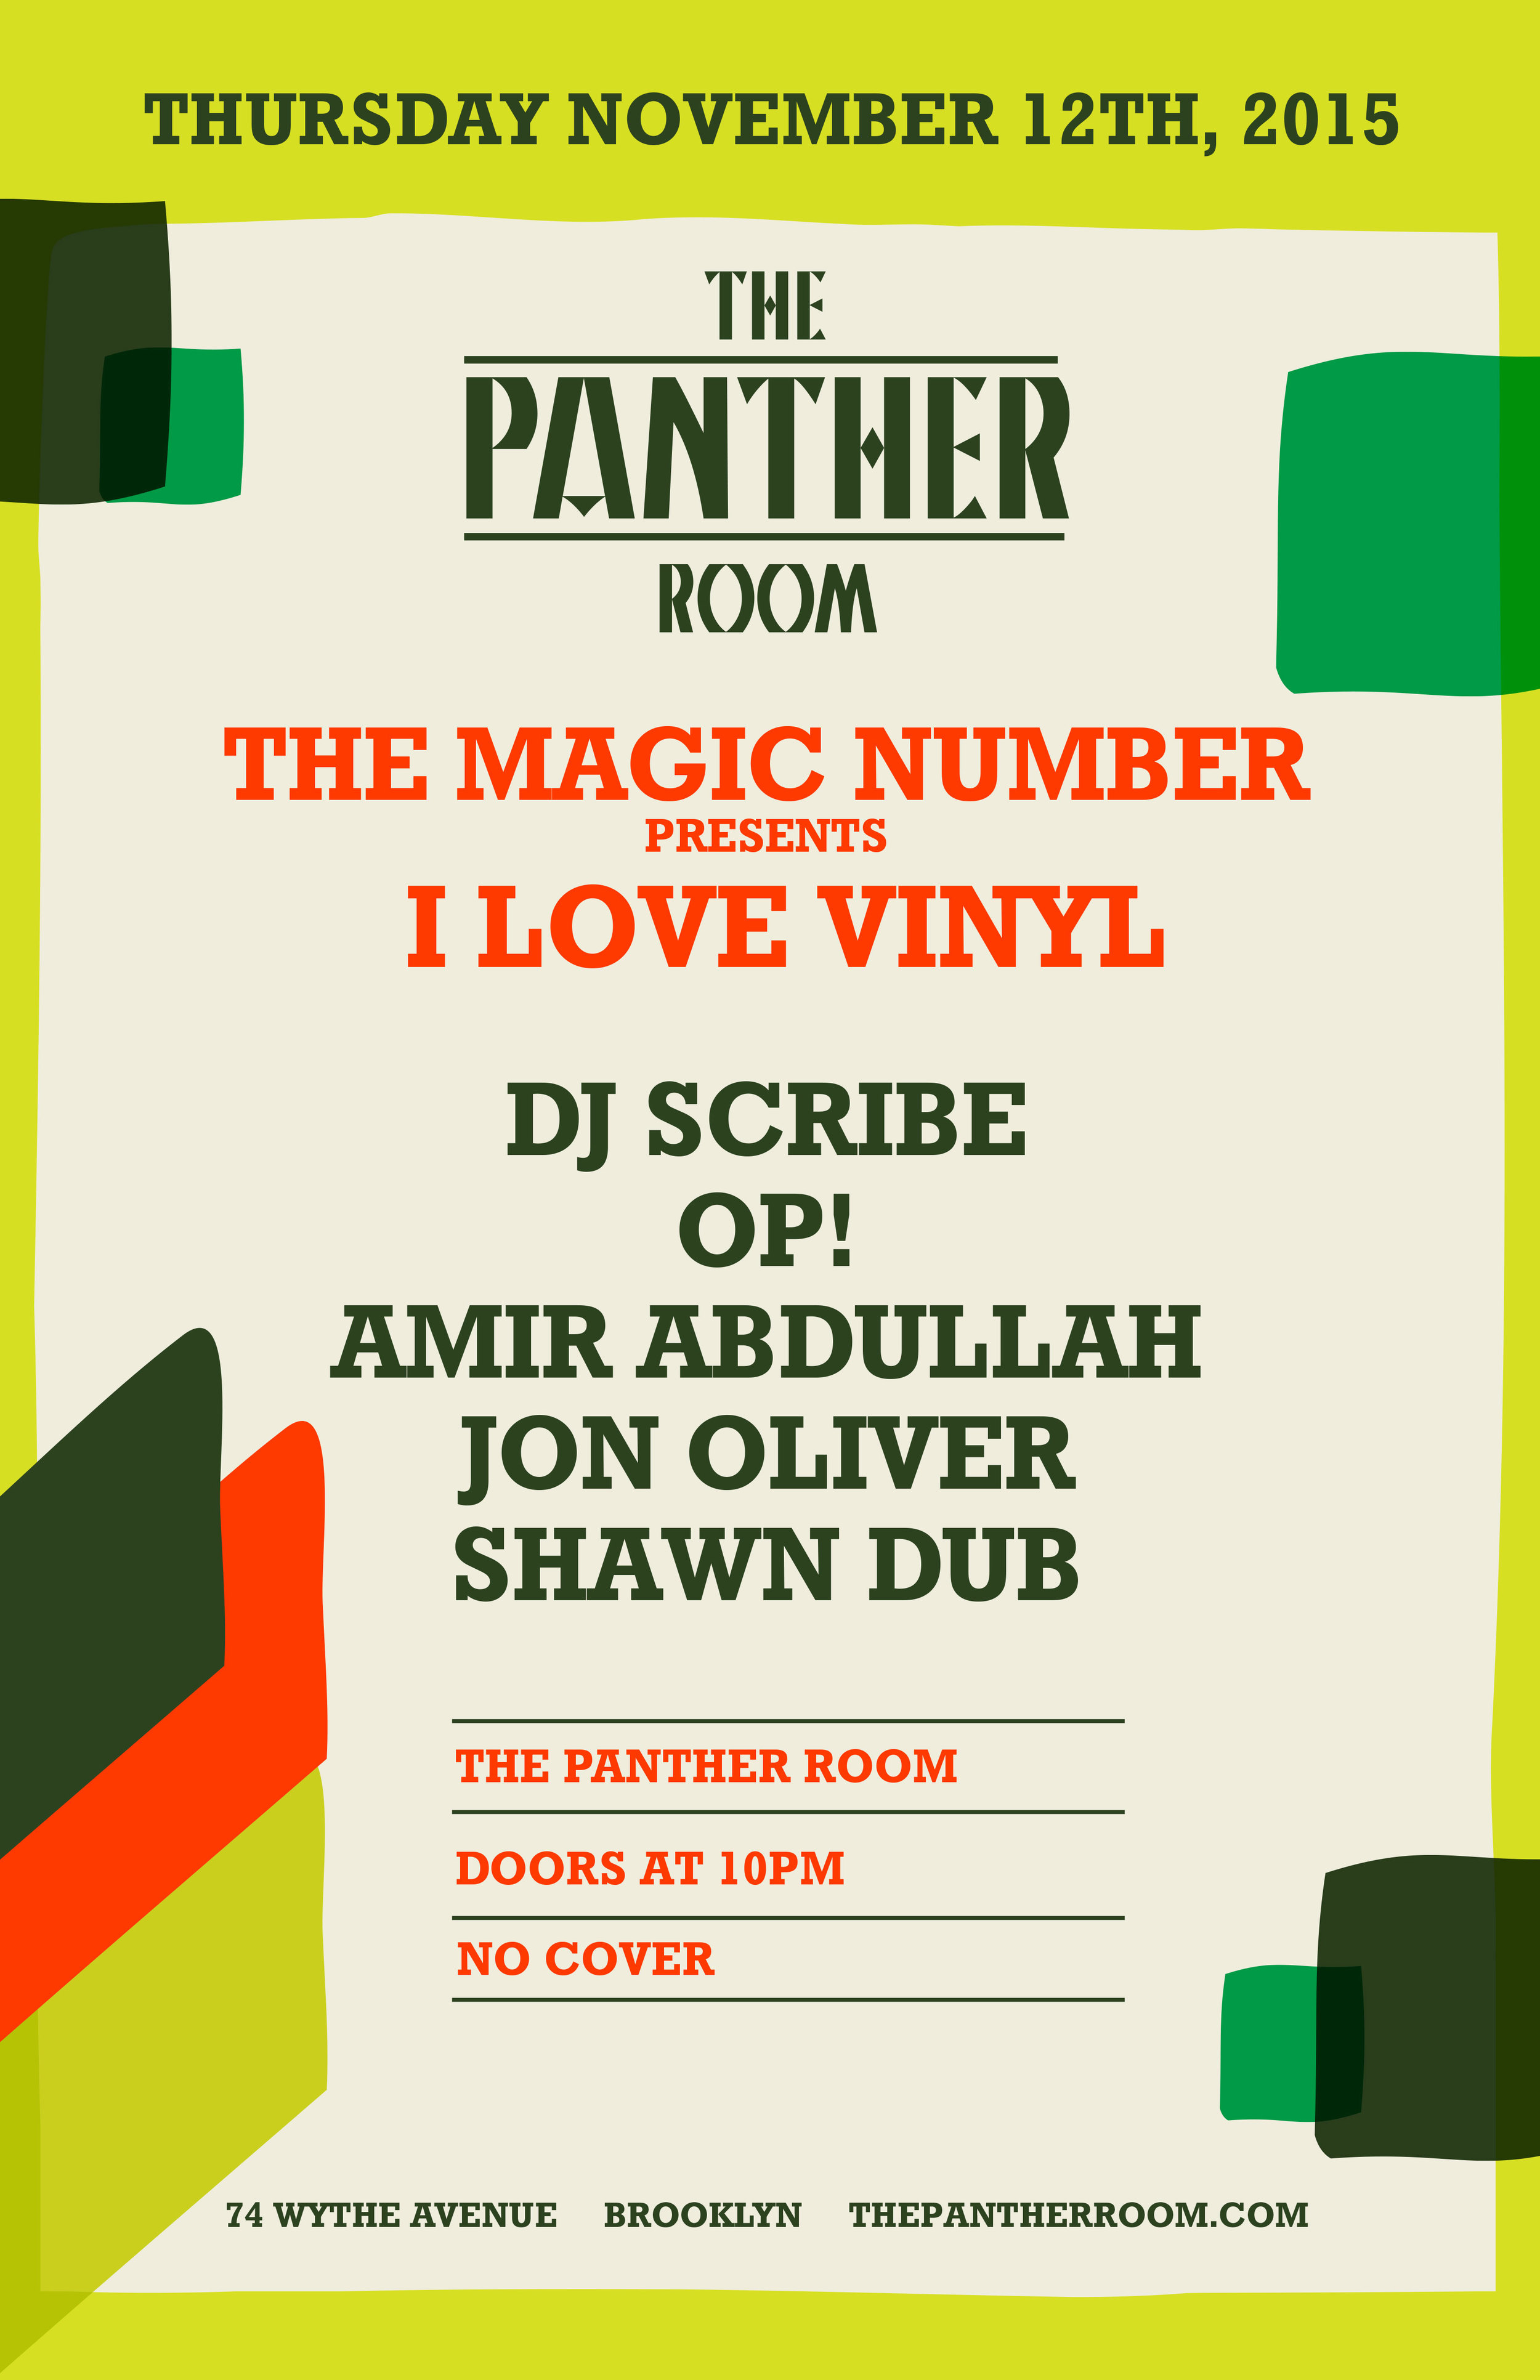 I Love Vinyl   *THURSDAY*Nov 12th    Residents:   DJ Scribe   Amir Abdullah   Jon Oliver   OP!   Shawn Dub    I Love Vinyl is back at our new monthly home at The Panther Room at Ouput onThursday, Nov. 12. The parties there get better every time and the last one was pure fire. Not sure what would be hotter than fire, but the upcoming party will definitely be that. The bomb? Boom.  This time we are joined by great friends and djs Danilo Braca aka danyb of  TSoNYC The Sound of New York City and Jennifer Duchess Nash aka The Duchess. They will rotate in with us at the beginning and end of the night. Our cup truly doth run over, innit?  The Magic Number,Panther's fledgeling Thursday night series, tasked with breaking down the barriers of Output's house & techno orthodoxy, presents I Love Vinyl as their first and only monthly residency. Kick-ass mixer, isolator and eq provided by  Alpha Recording System .   at The Panther Room at Output 74 Wythe Ave (use separate entrance on North 12th) Williamsburg  No Cover 21+ w ID